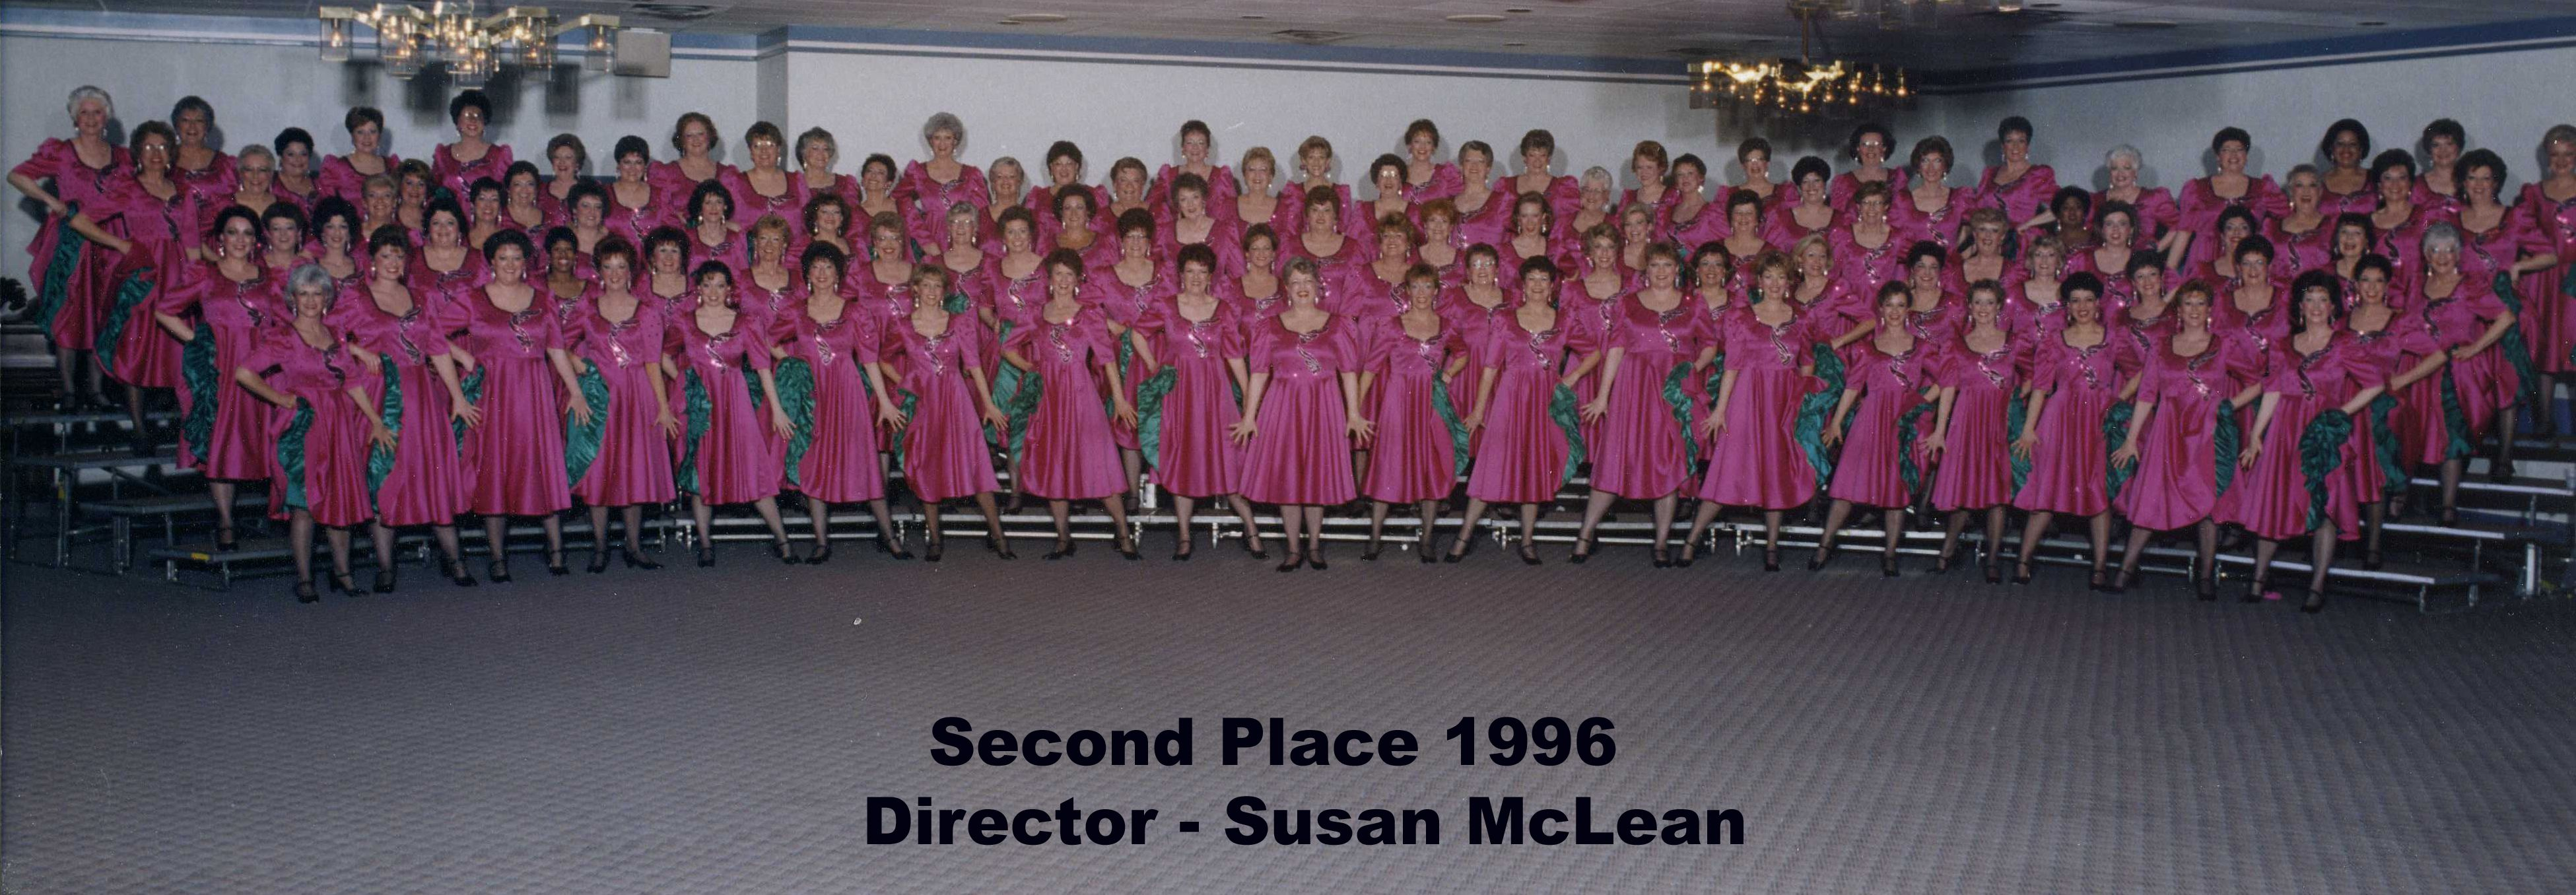 Chinook Winds Show Chorus - Second Place 1996